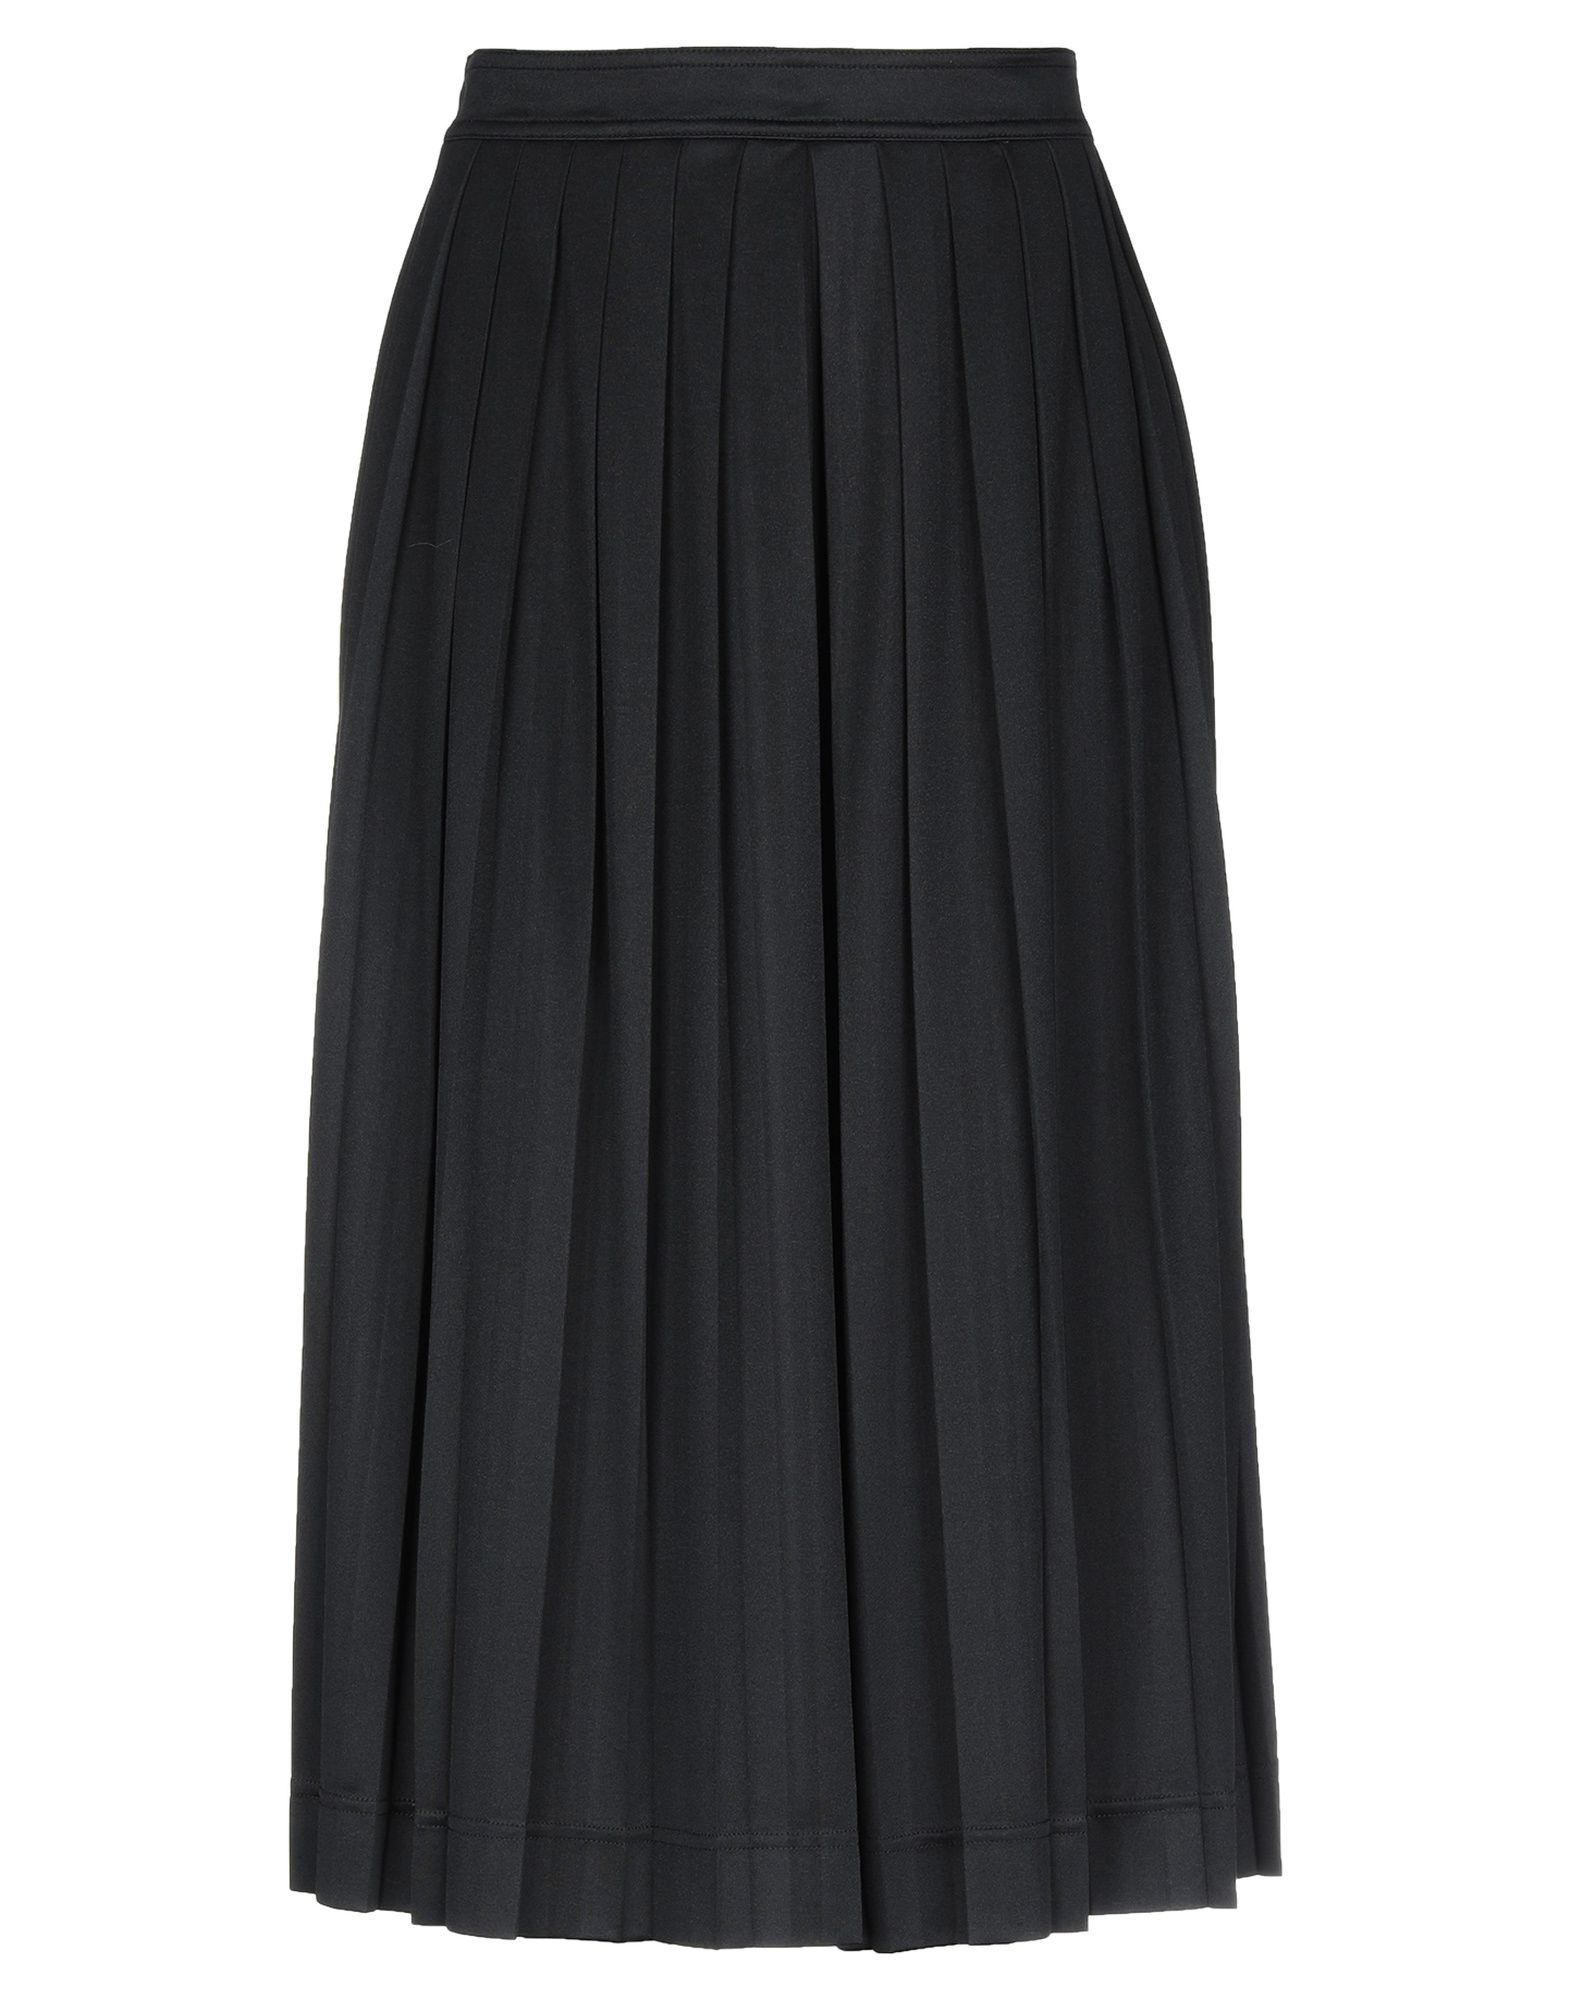 jersey, folds, basic solid color, mid rise, no pockets, rear closure, zip, unlined, divided skirt.